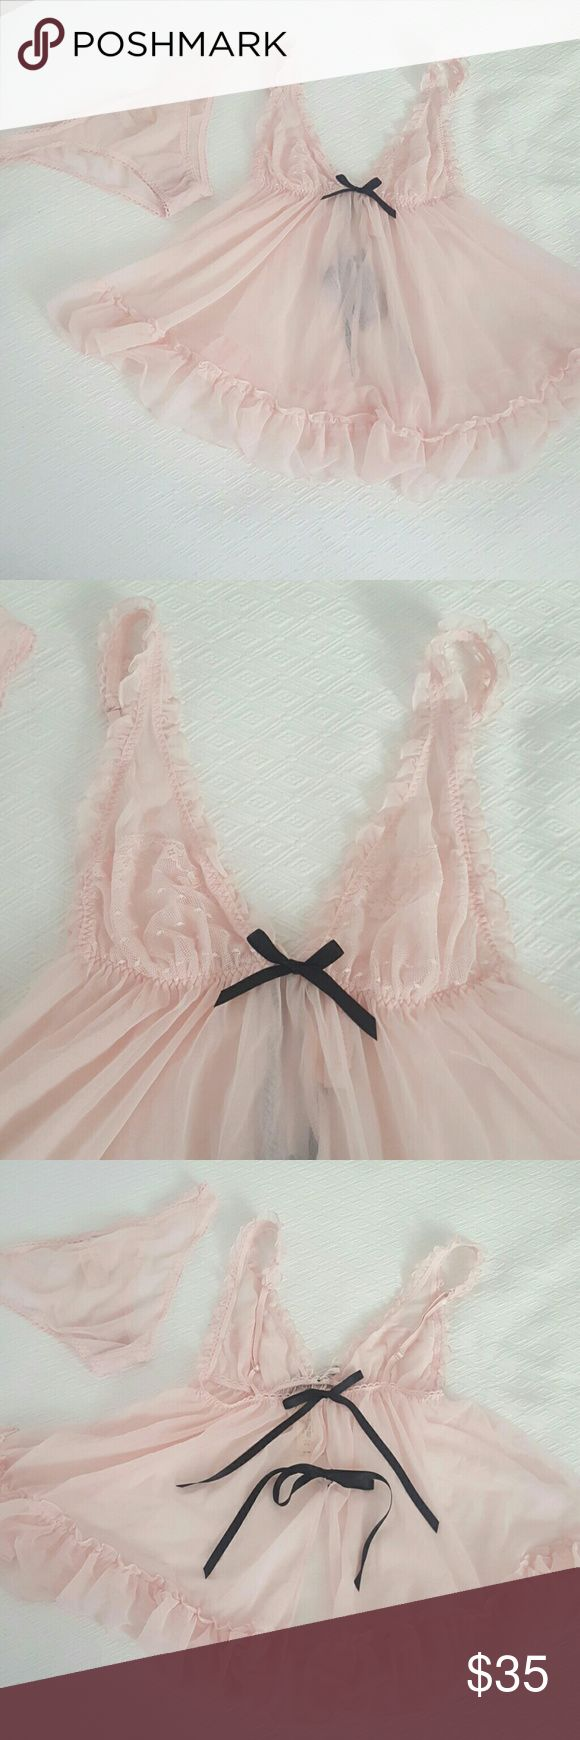 NWT Victoria's Secret babydoll lingerie with panty Beautiful details, 2 piece set, new with tags. Victoria's Secret Intimates & Sleepwear Chemises & Slips